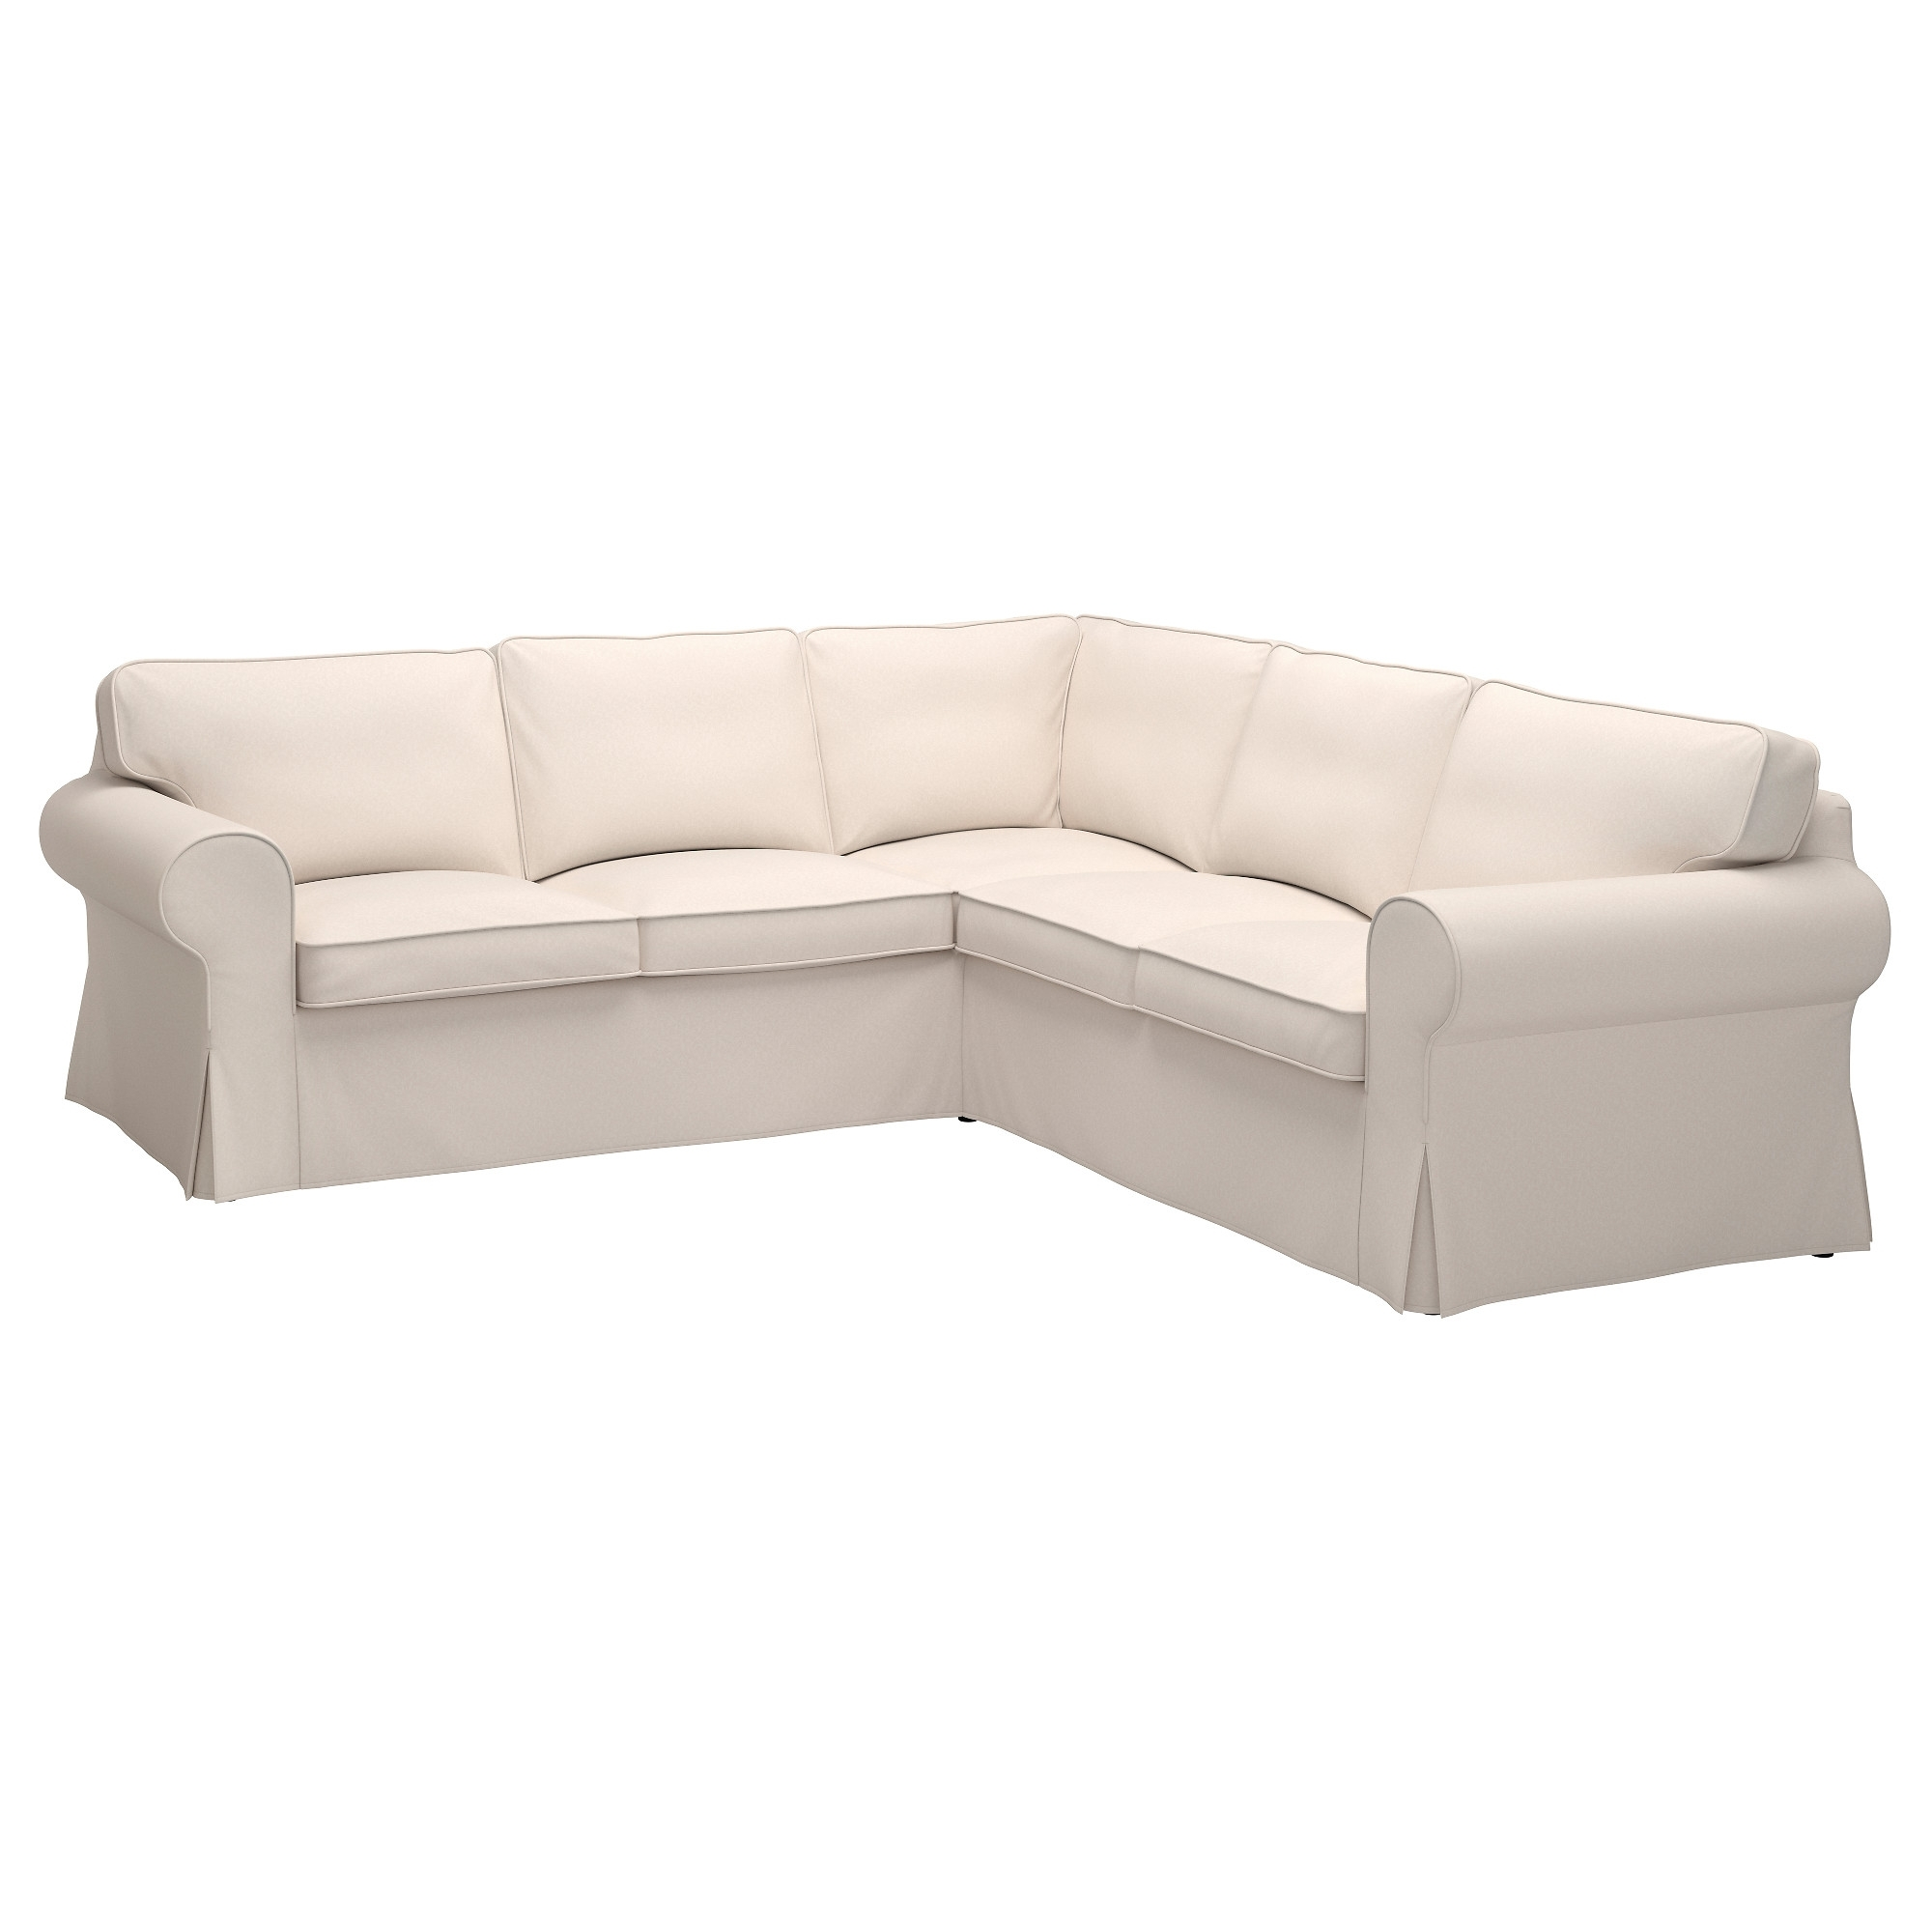 Popular Sectional Sofas At Ikea Regarding Ektorp Sectional, 4 Seat Corner – Nordvalla Dark Gray – Ikea (View 14 of 20)